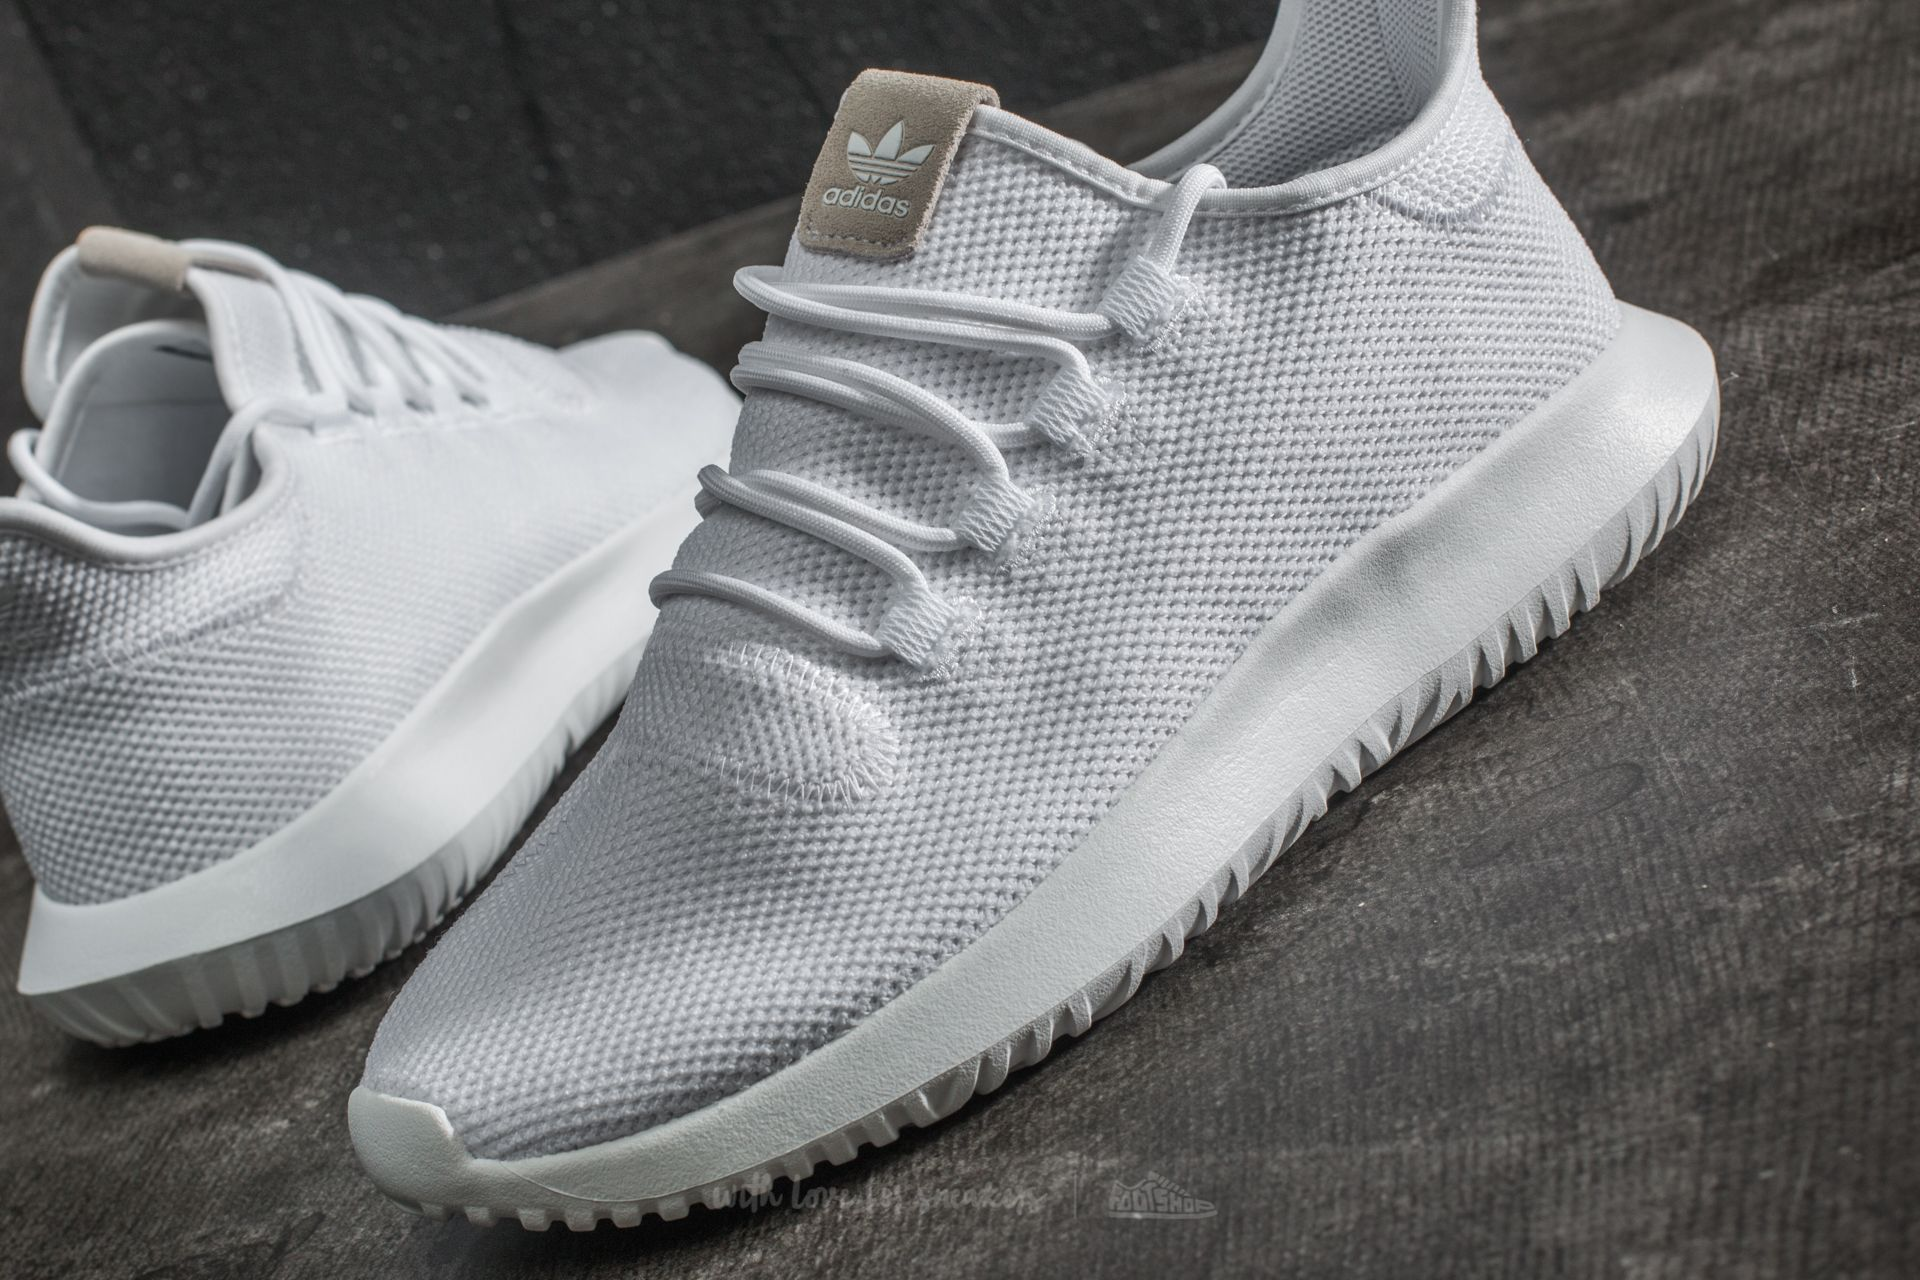 hot sale online a3d1f f689a adidas Tubular Shadow Ftw White/ Core Black/ Ftw White ...